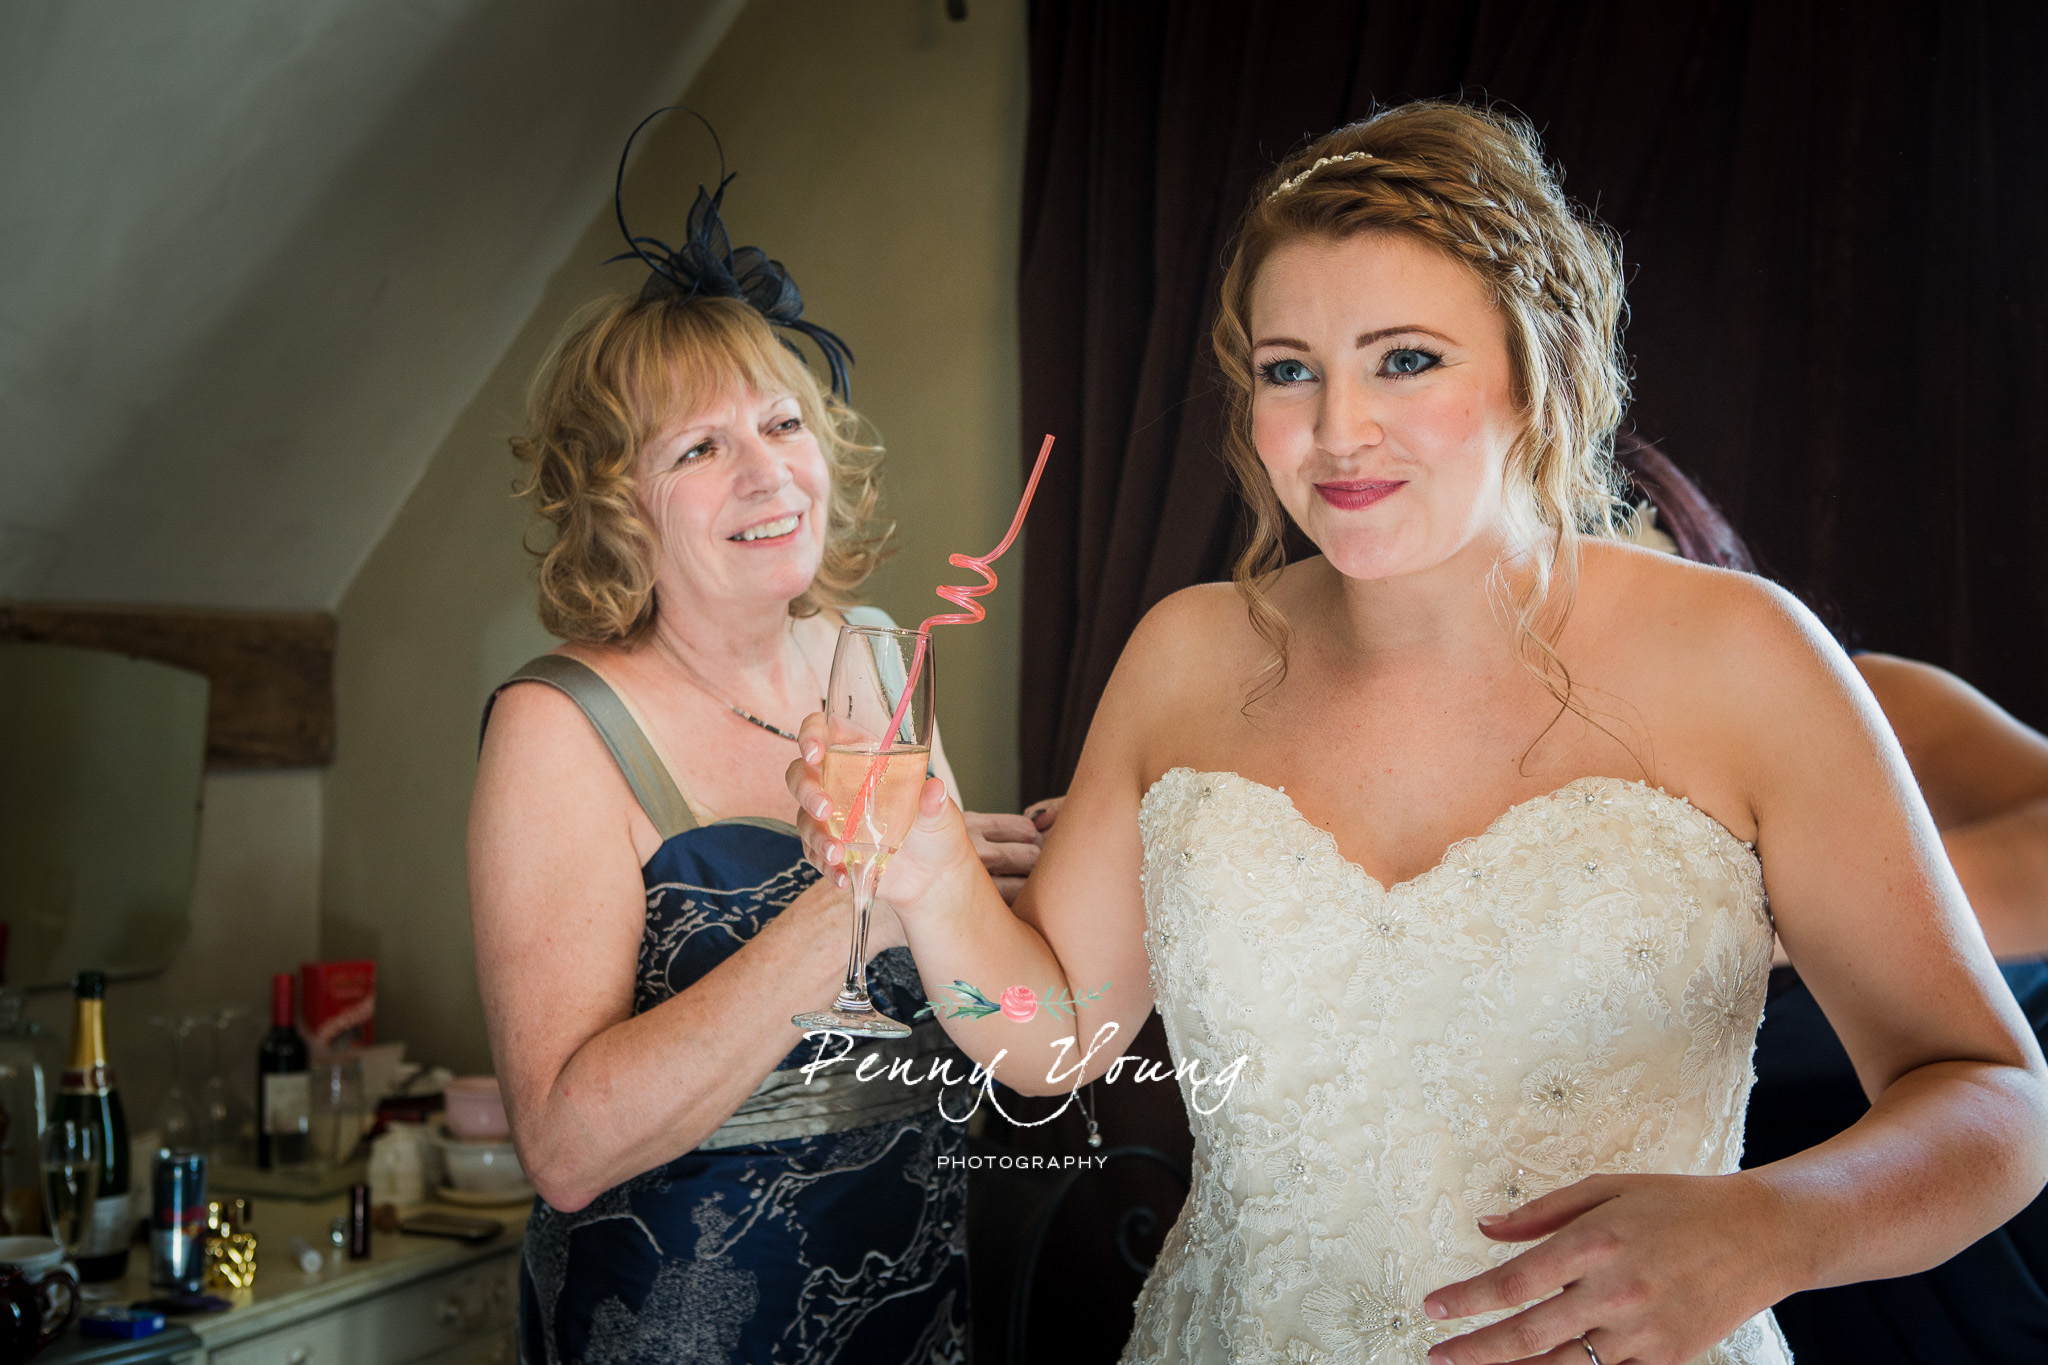 Penny_Young_Photography_The_Bell_Ticehurst_Wedding-Photography_Rachel_Matt_136